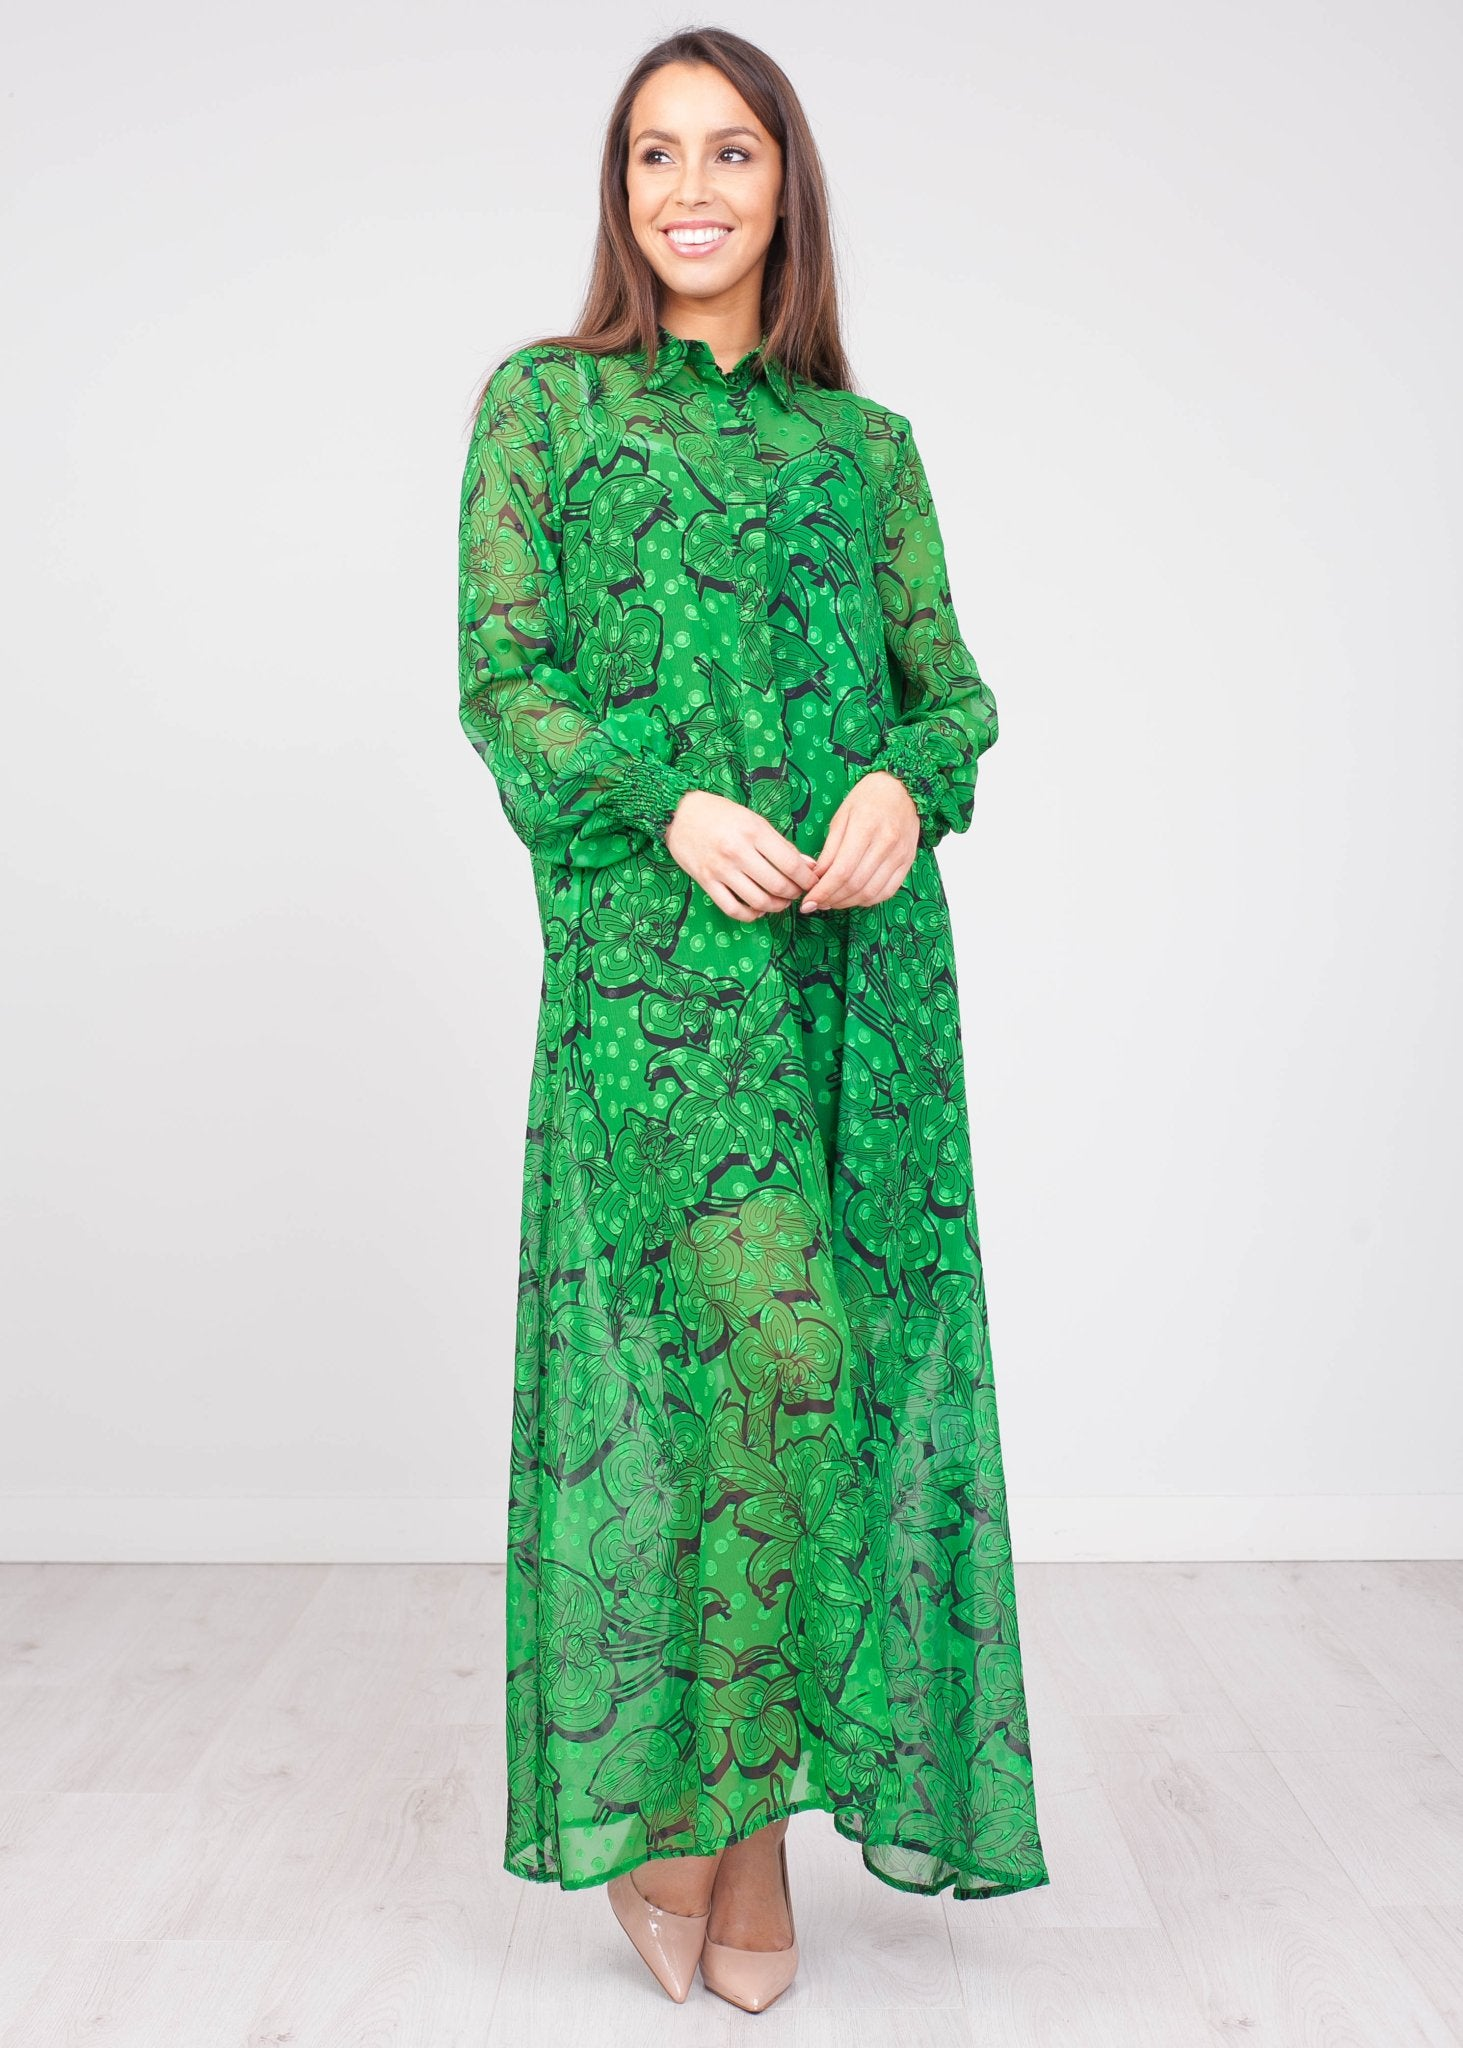 Sophia Green & Black Midi Dress - The Walk in Wardrobe